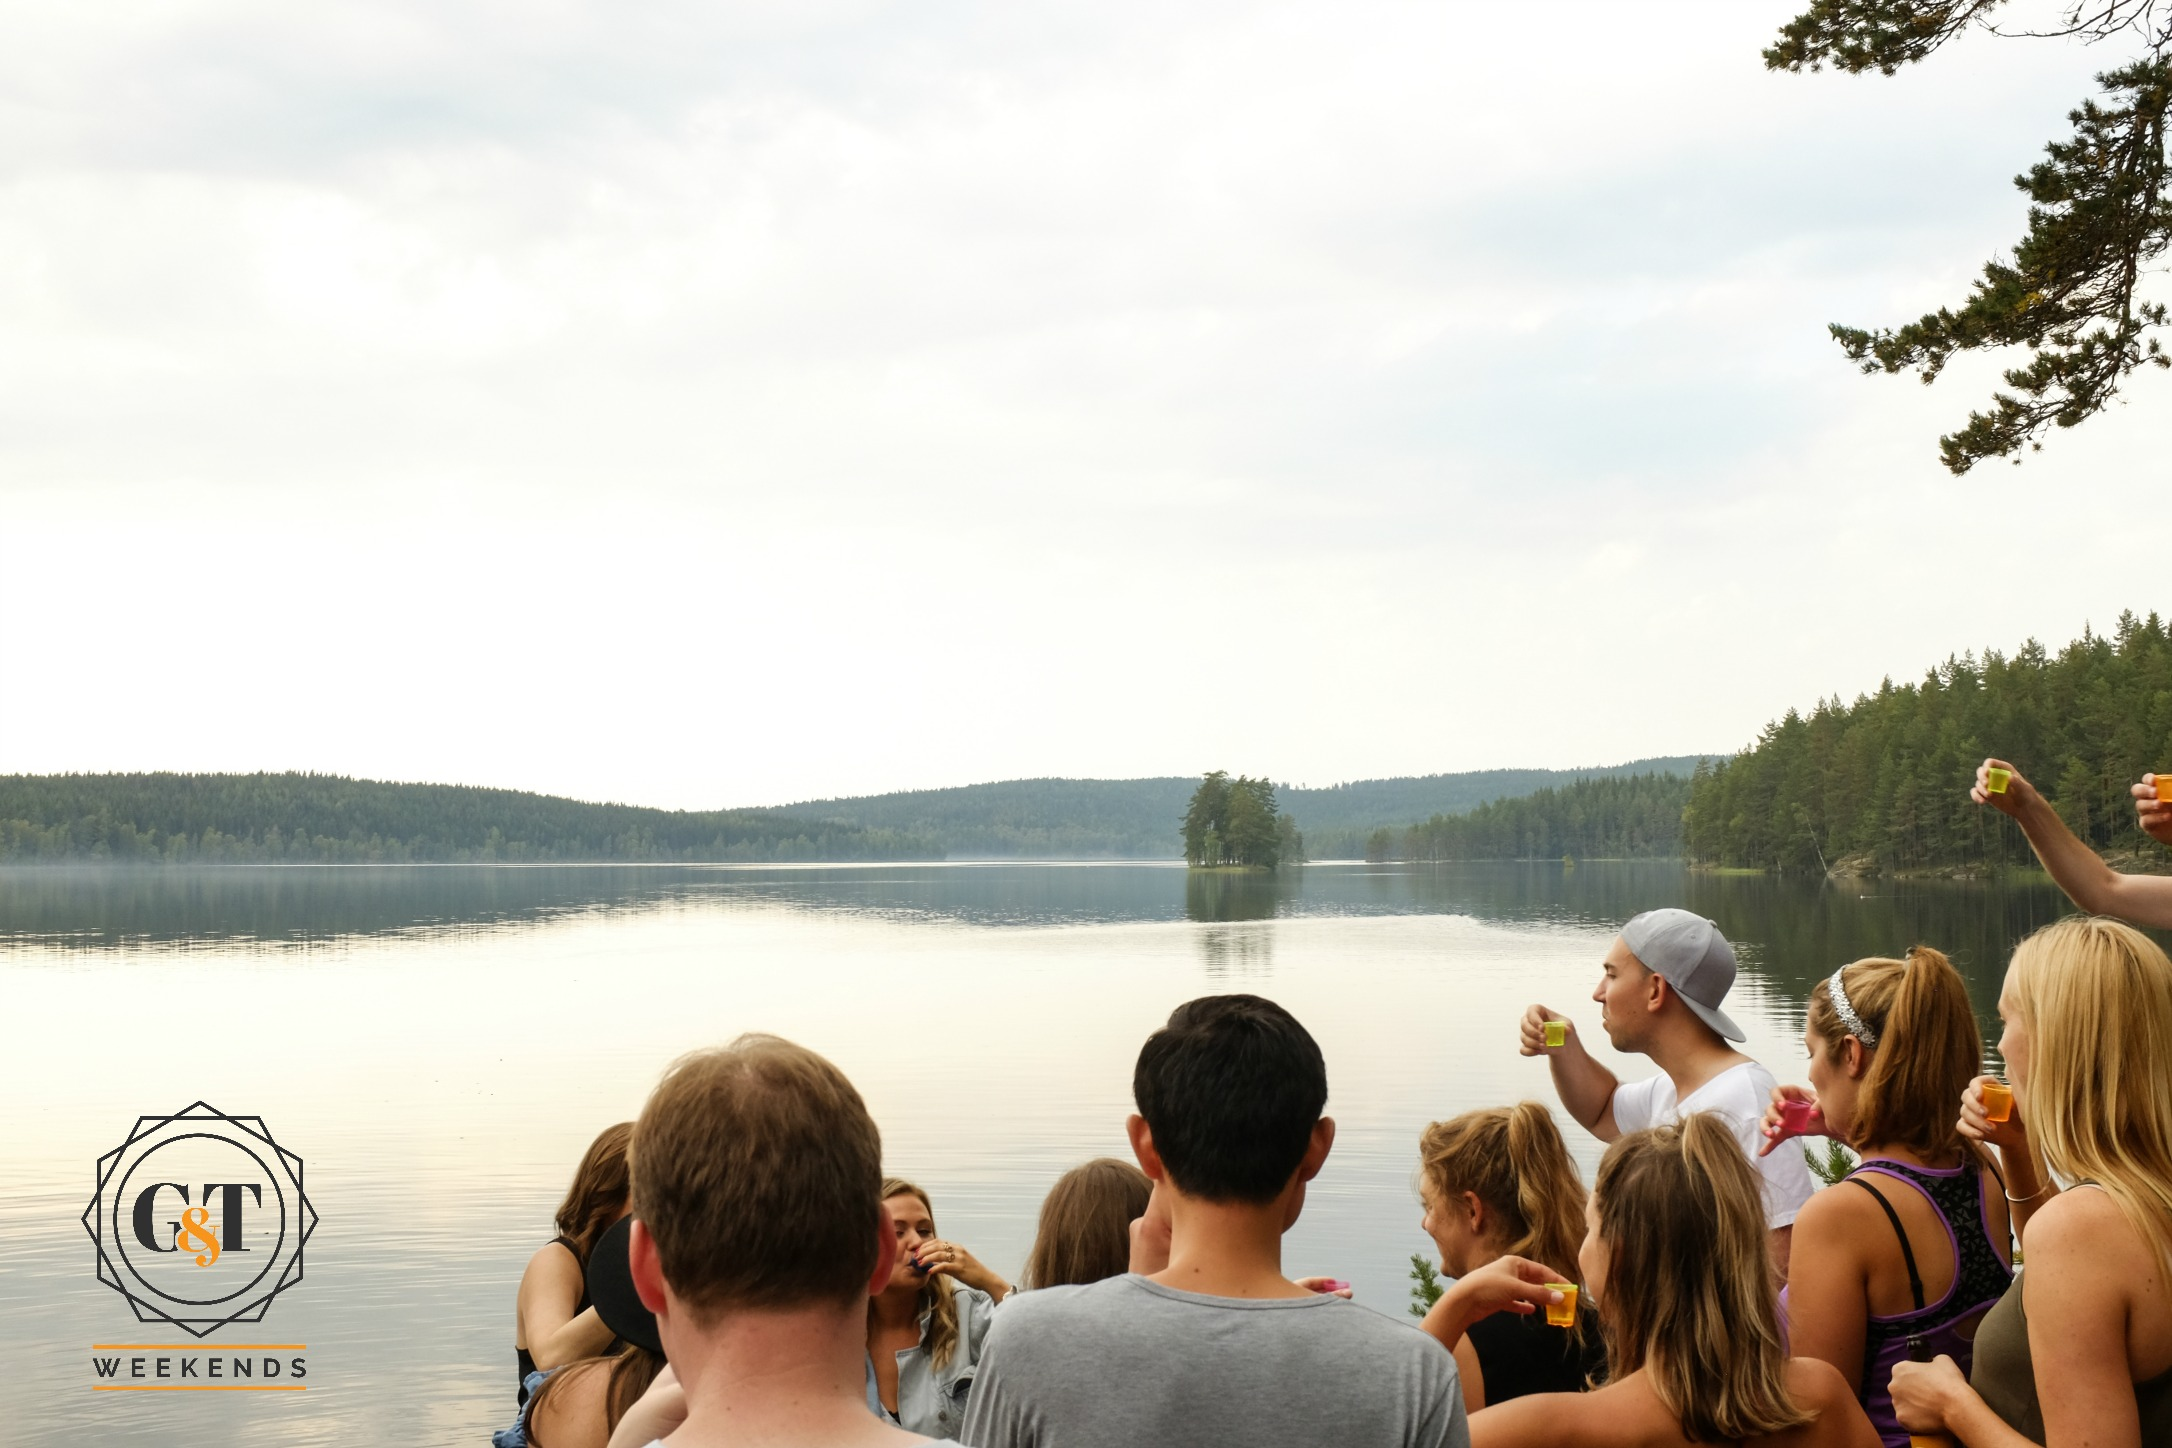 Drinking Aquavit by a Swedish lake on our luxury weekend away